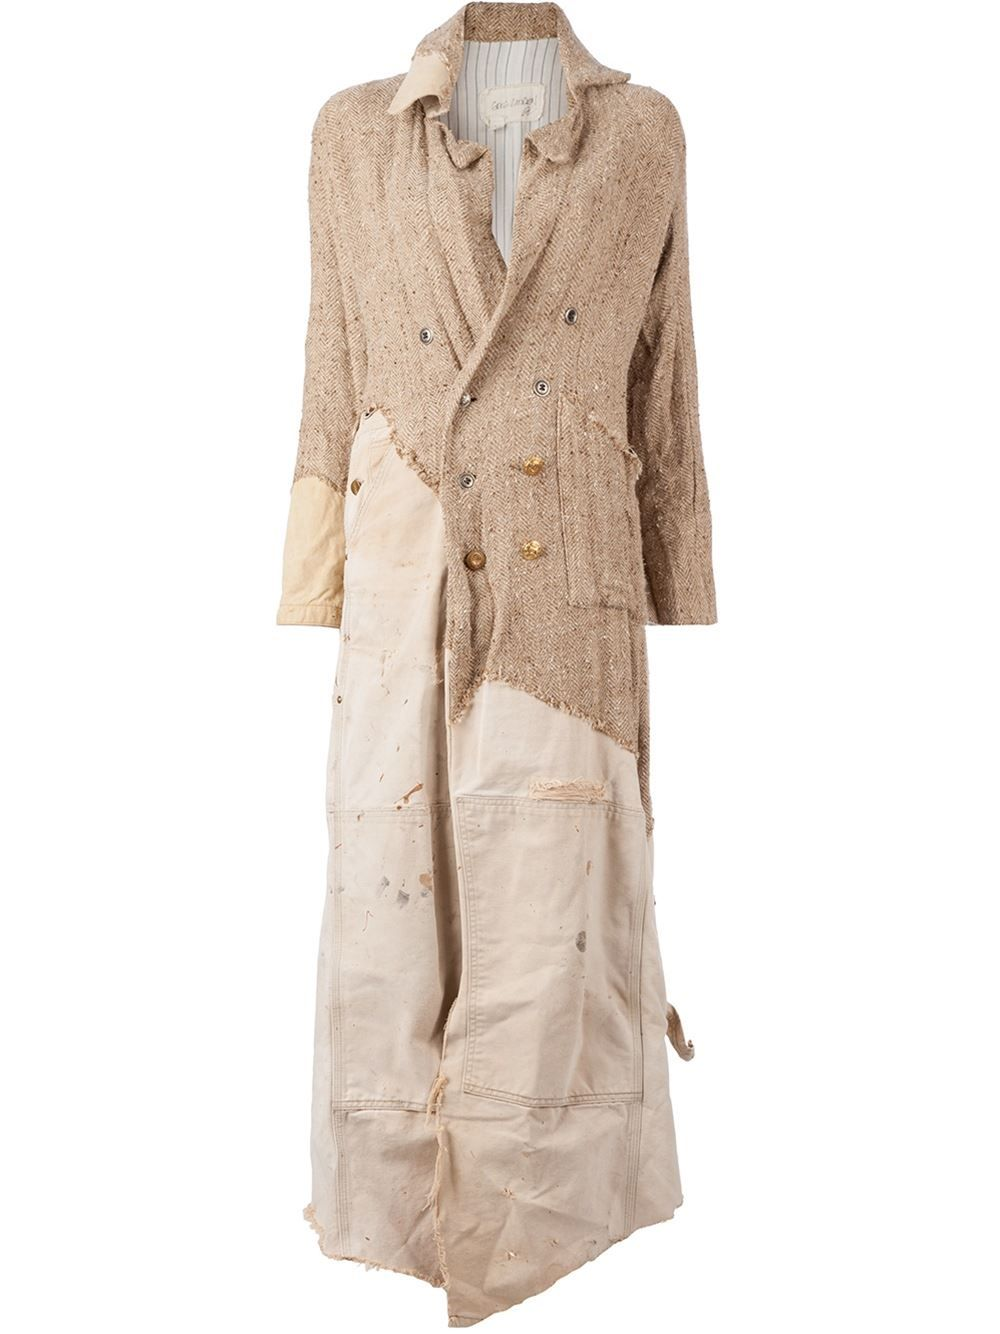 Greg Lauren Asymmetric Panelled Coat - L\'eclaireur - Farfetch.com ...